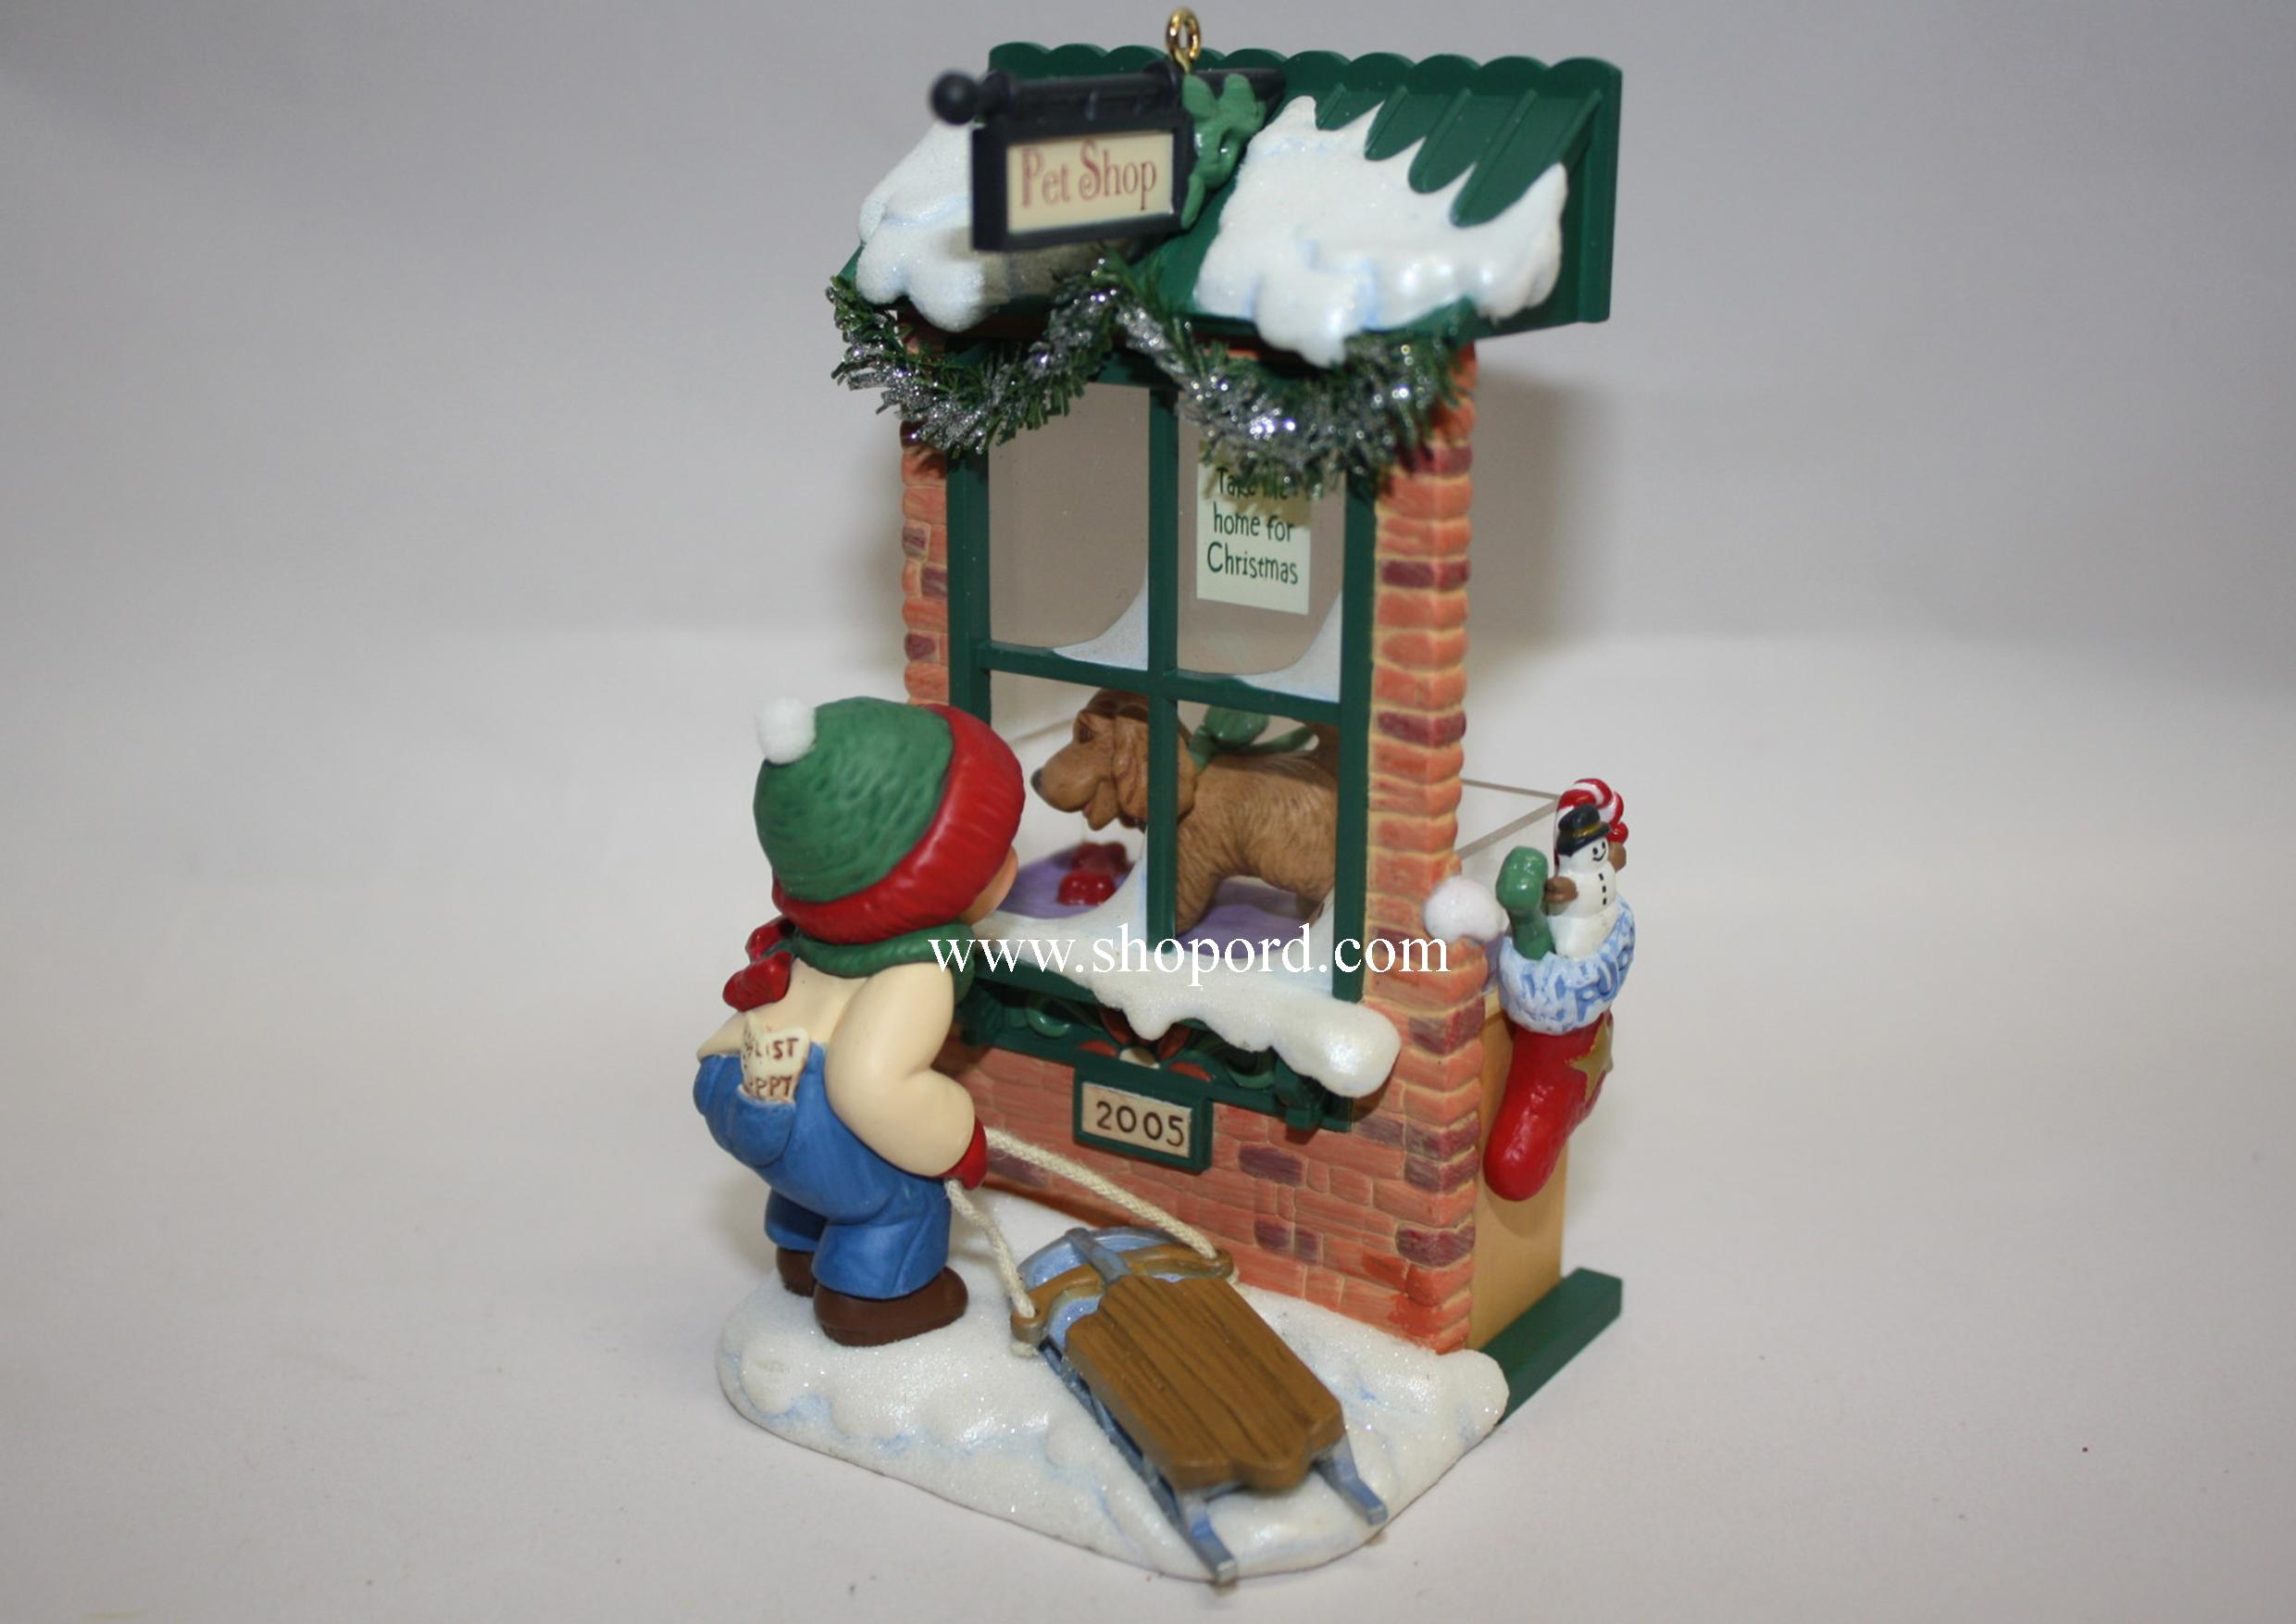 Hallmark 2005 Christmas Window Ornament Keepsake Club Exclusive 3rd in the Christmas Windows  series KOC QXC5003 Damaged Box